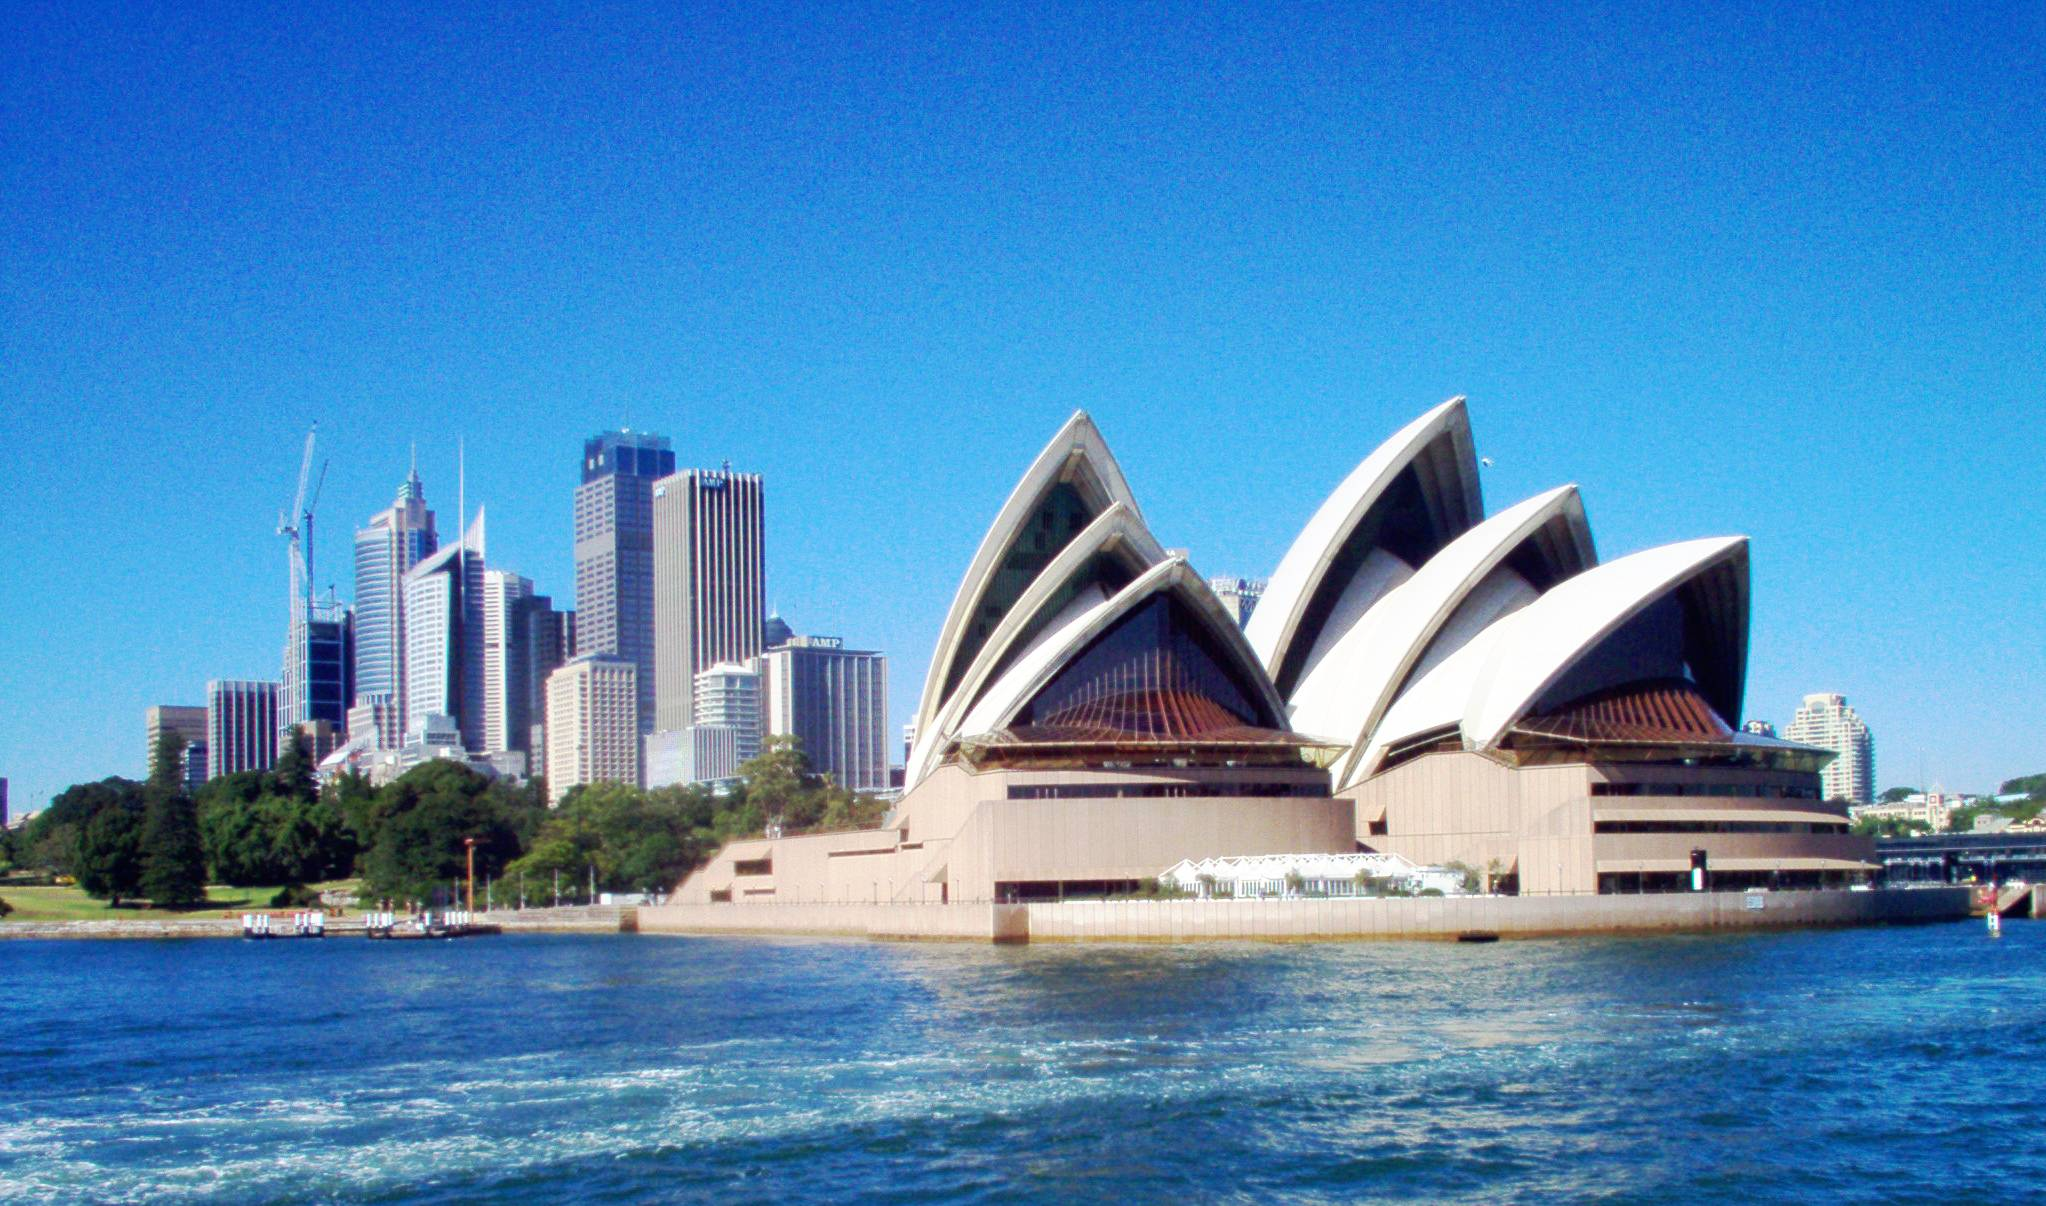 HQ Sydney Opera House Wallpapers | File 317.37Kb